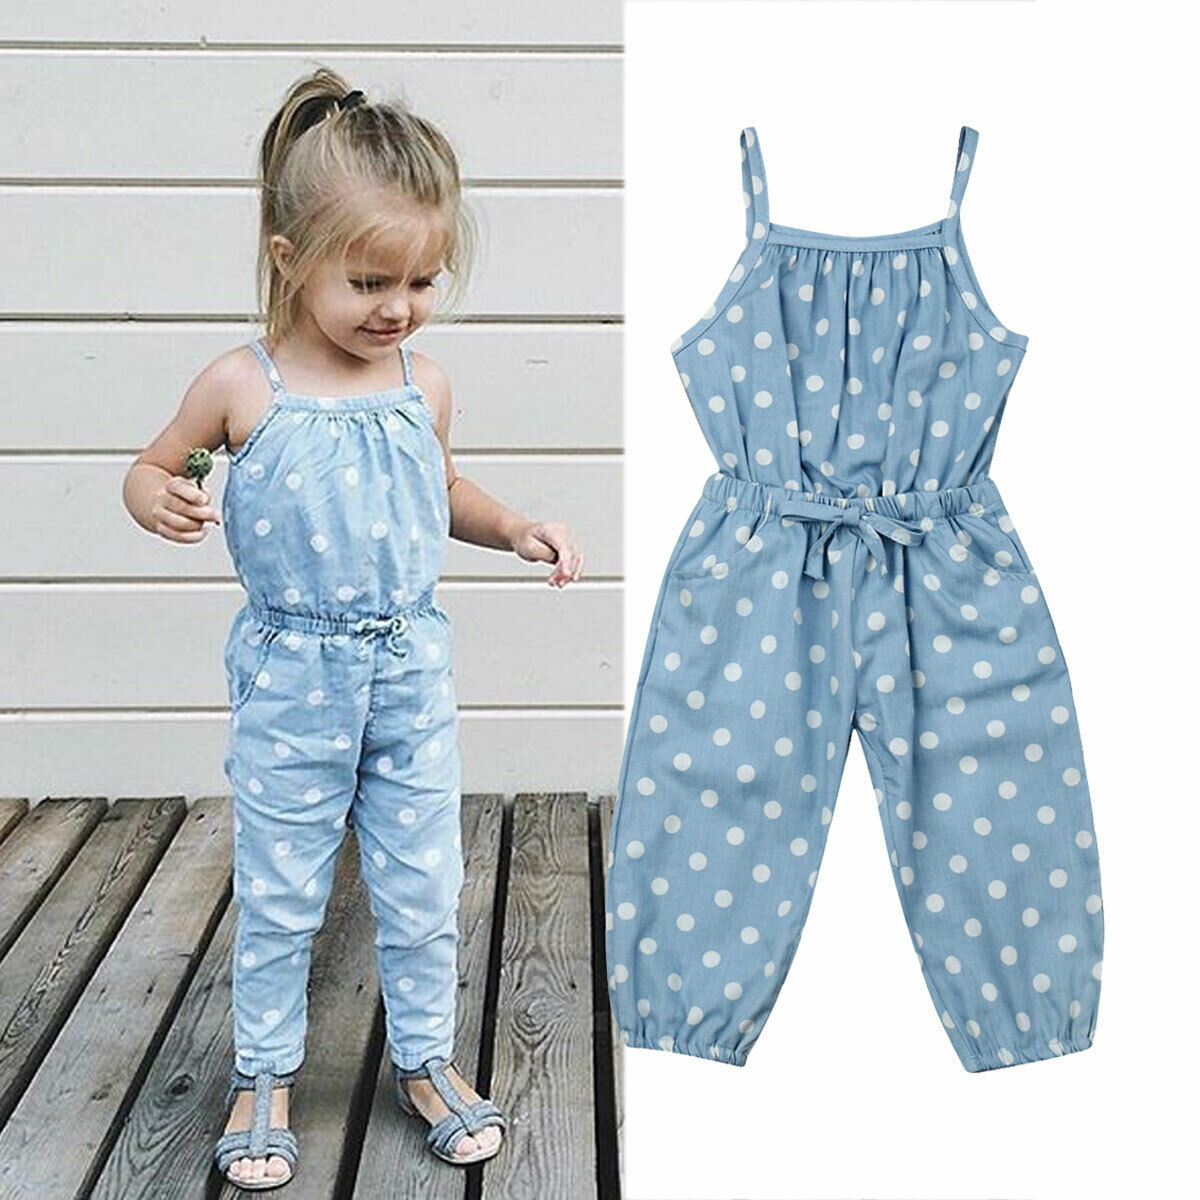 New Summer Toddler Baby Girl Clothes Polka Dot Print Sling Romper Jumpsuit One-Piece Outfit Sunsuit Playsuit Clothes